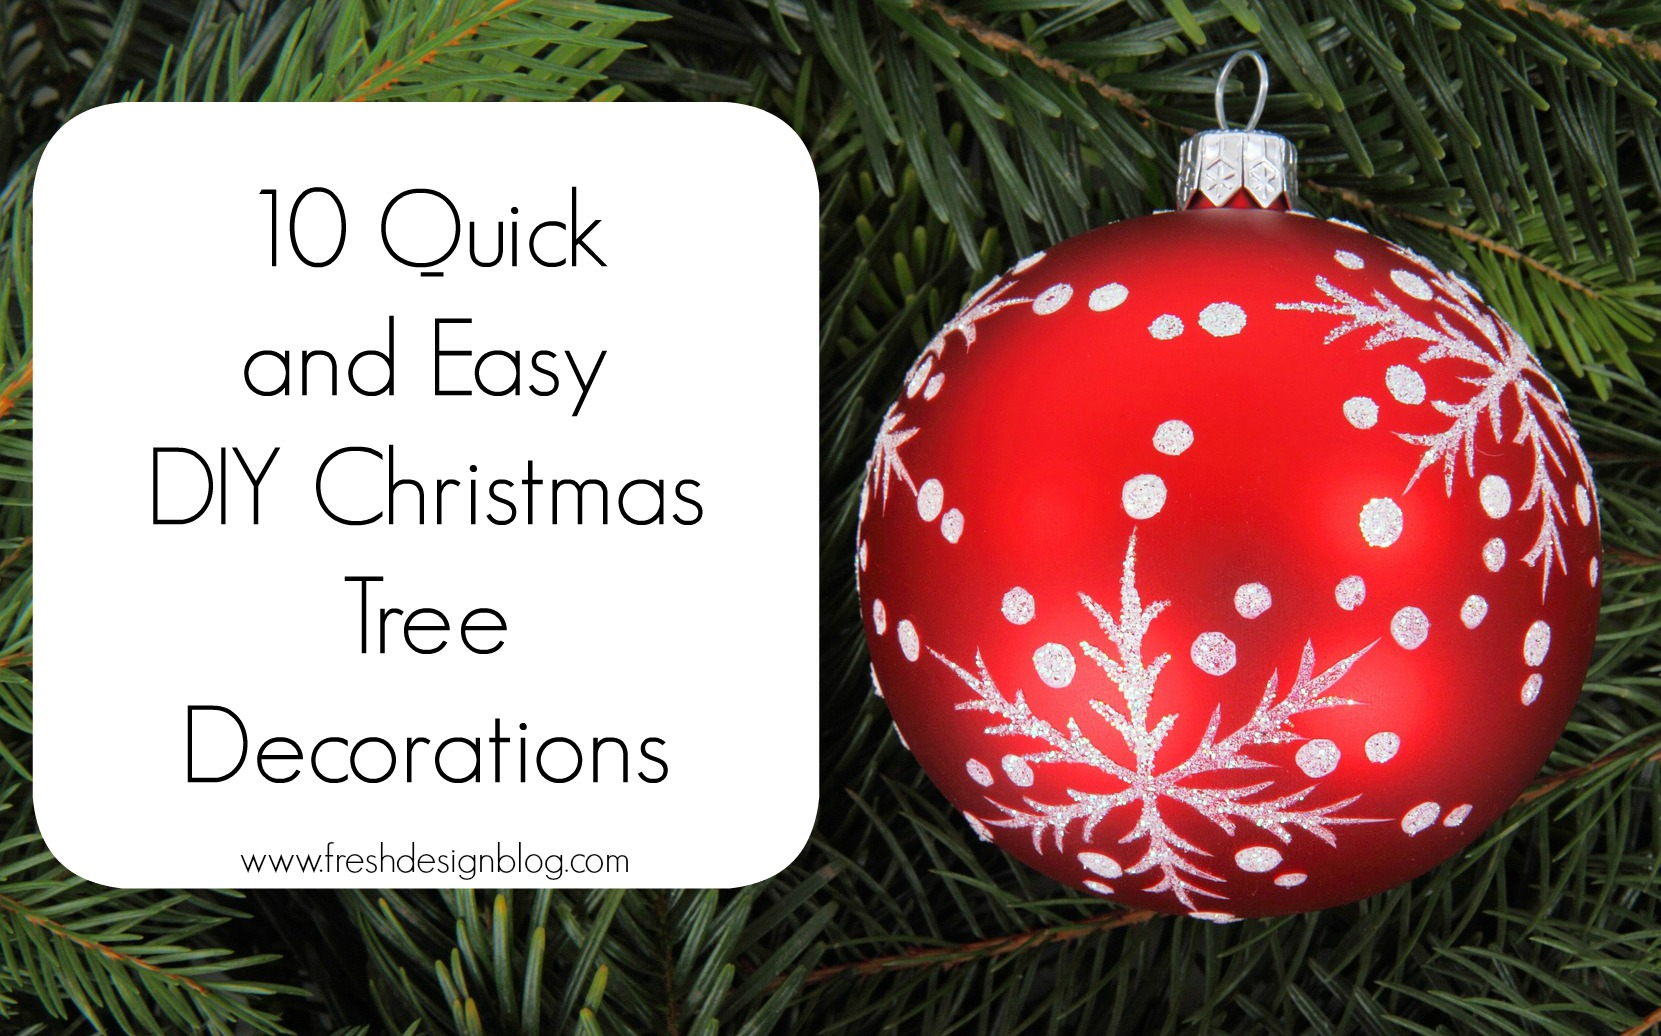 Easy Christmas Decorations To Make At Home